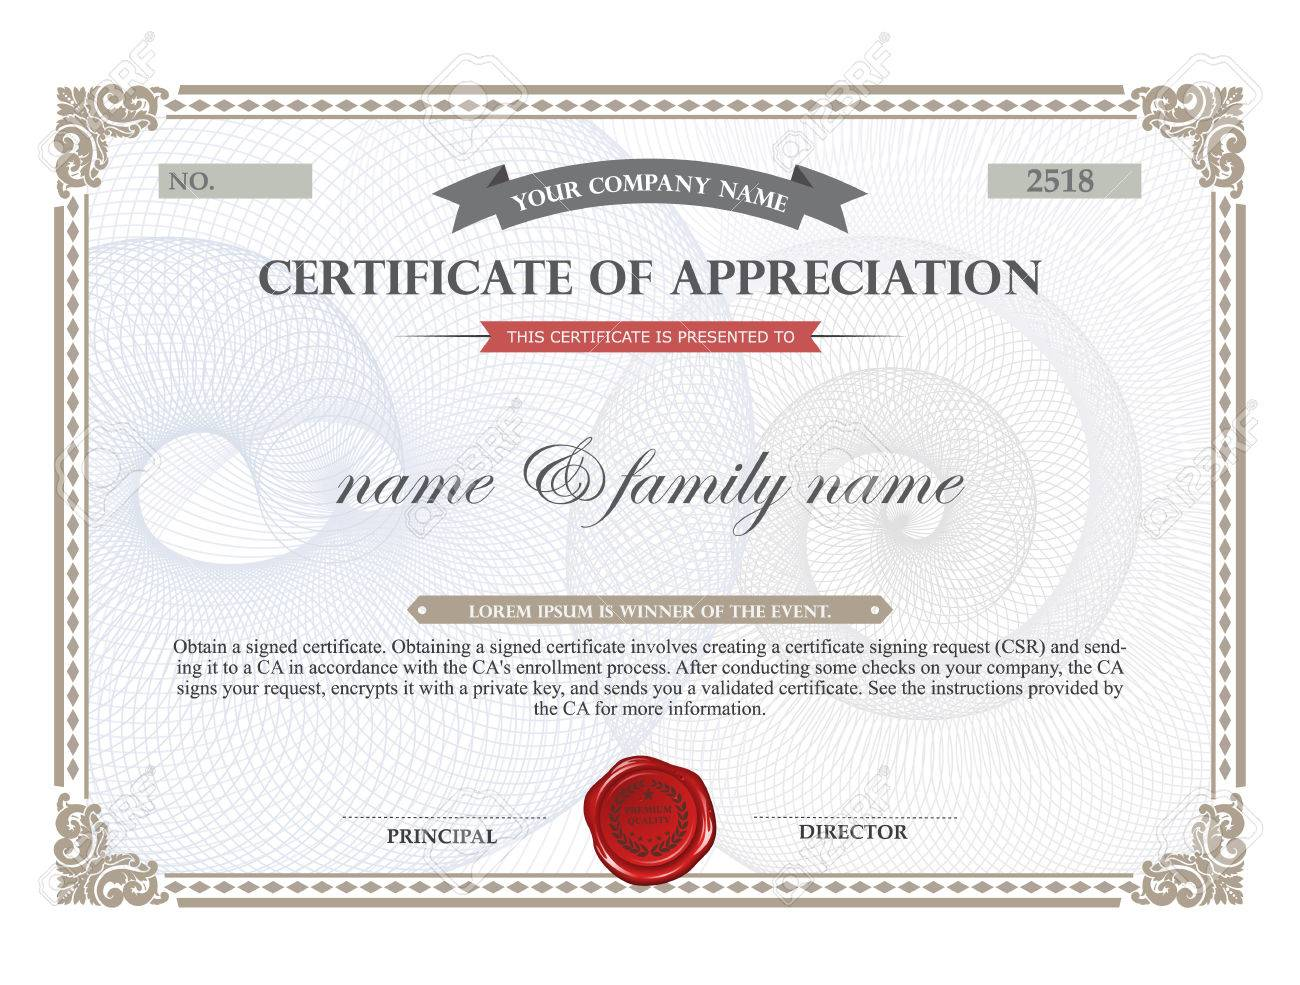 Degree Certificate Images Pictures Royalty Free Degree – Degree Certificate Template